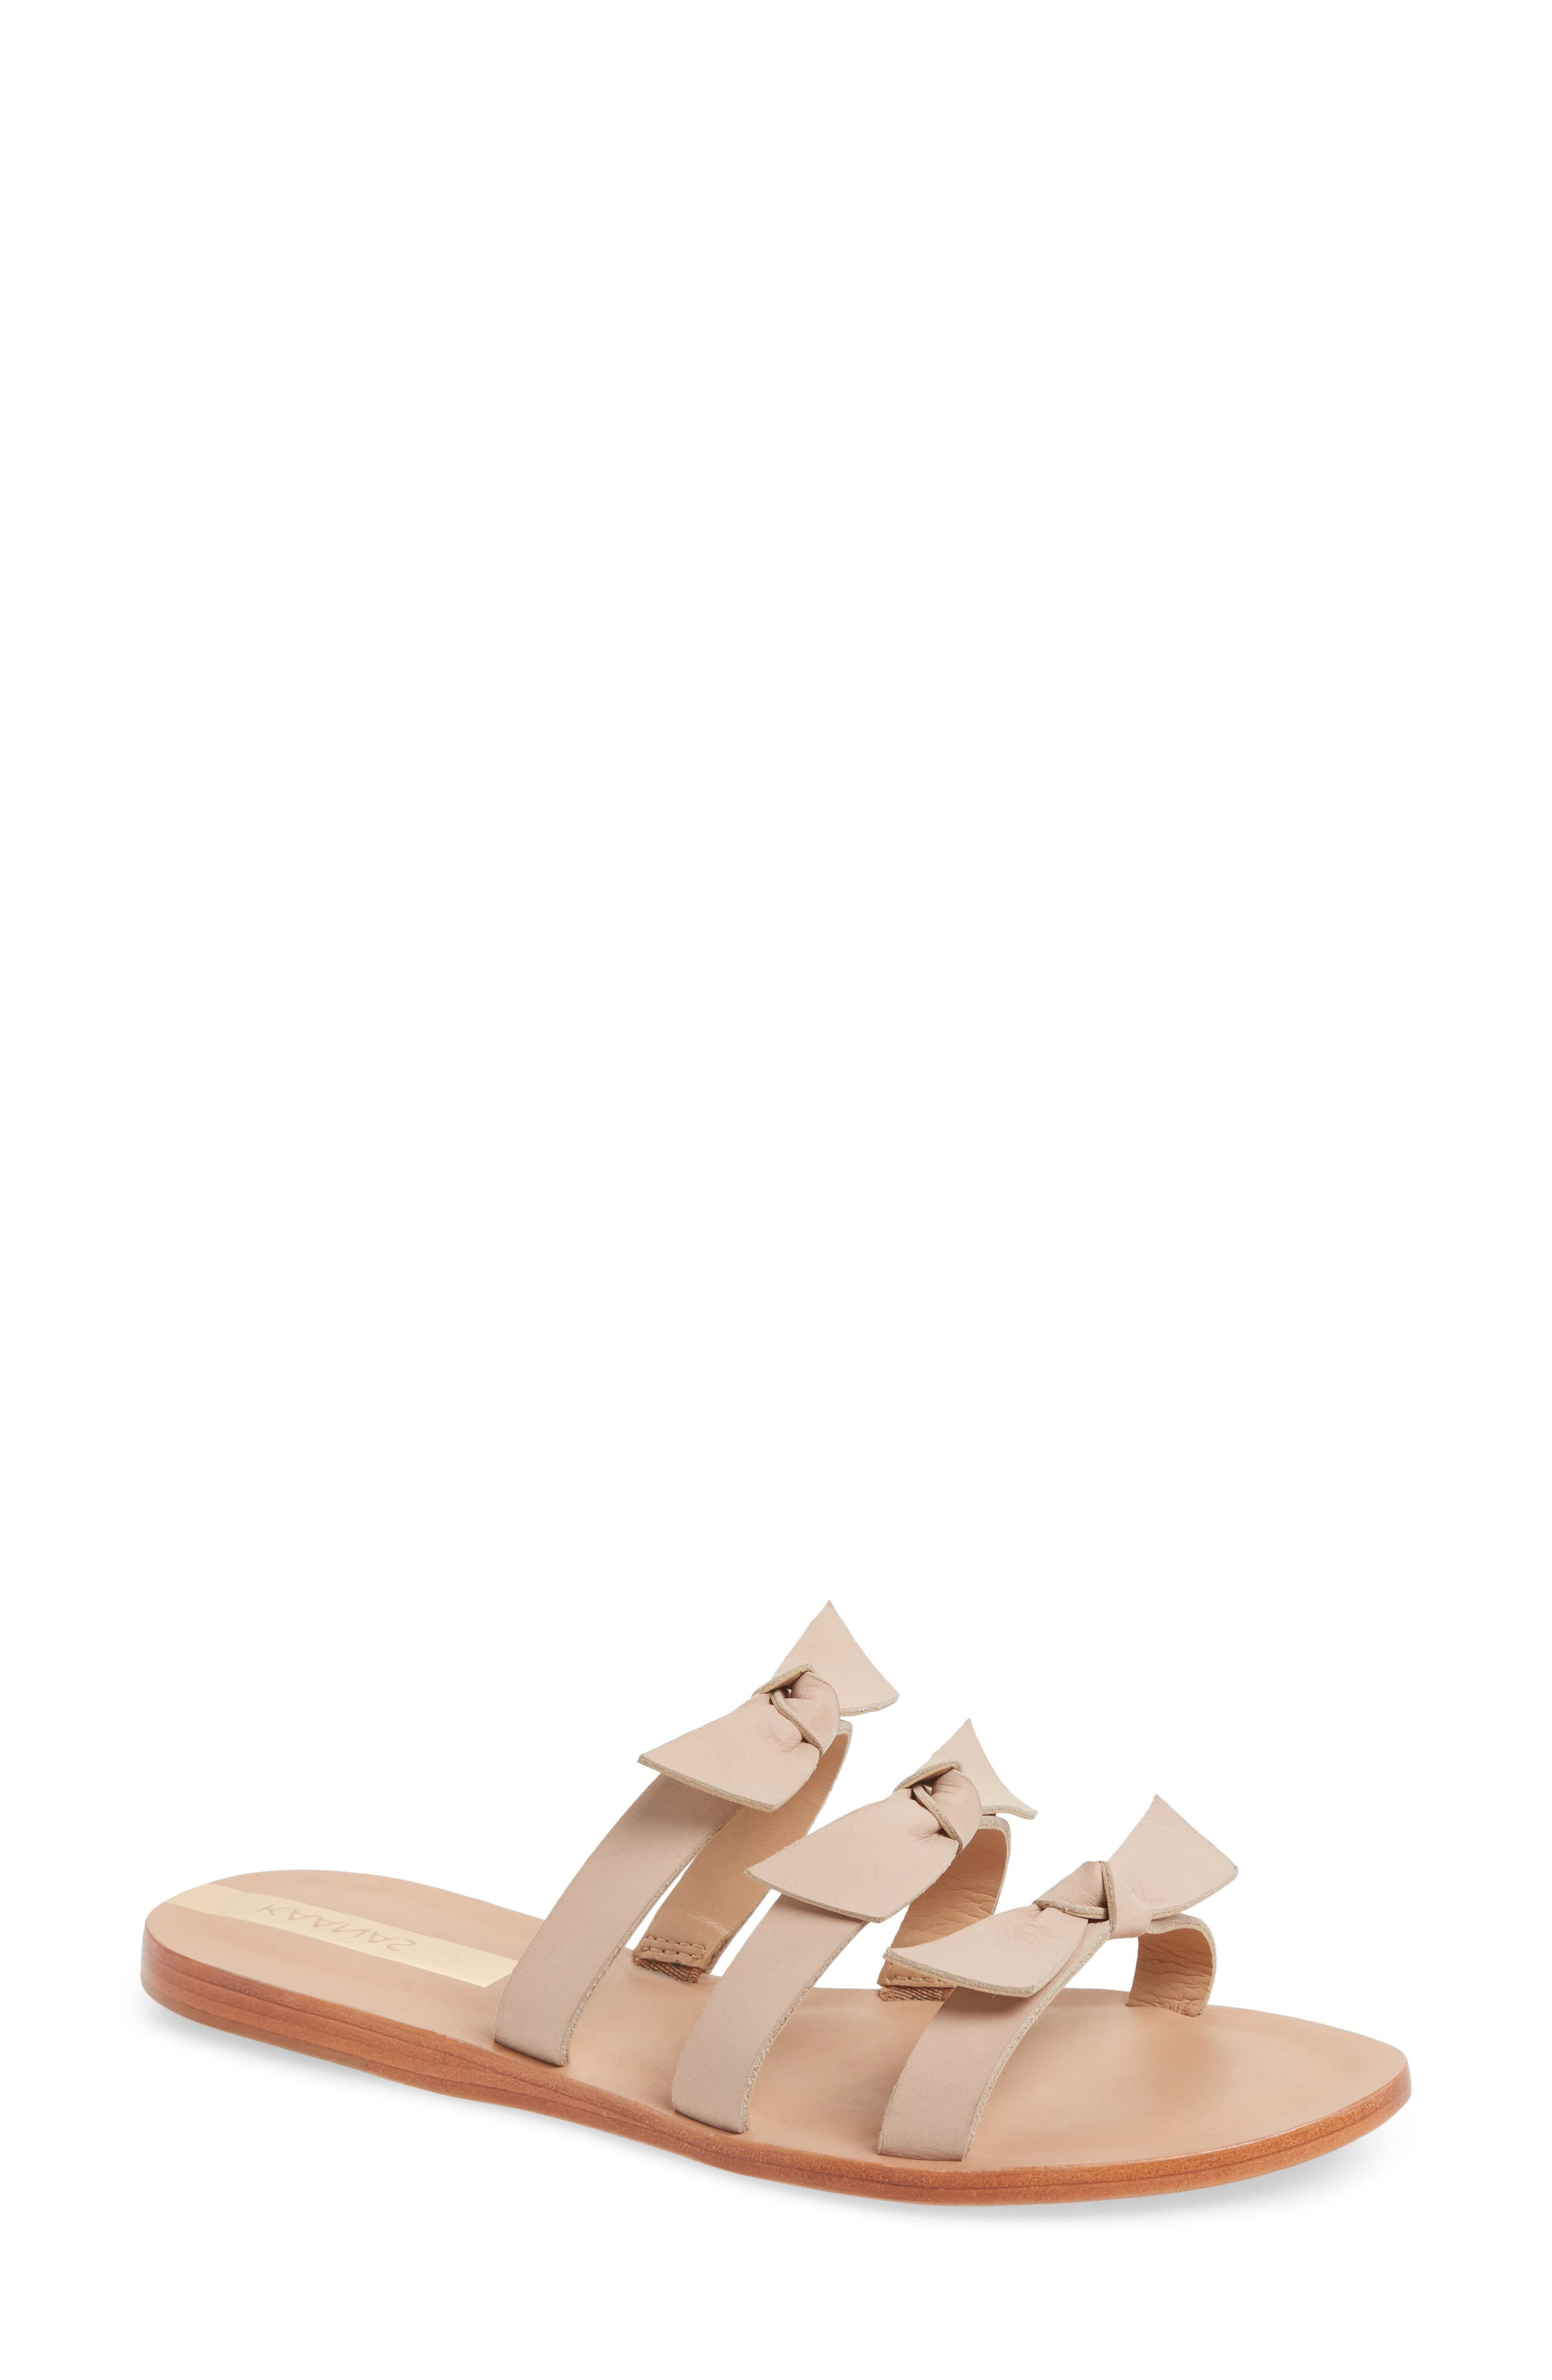 Kaanas Recife Knotted Slide Sandal (Women)